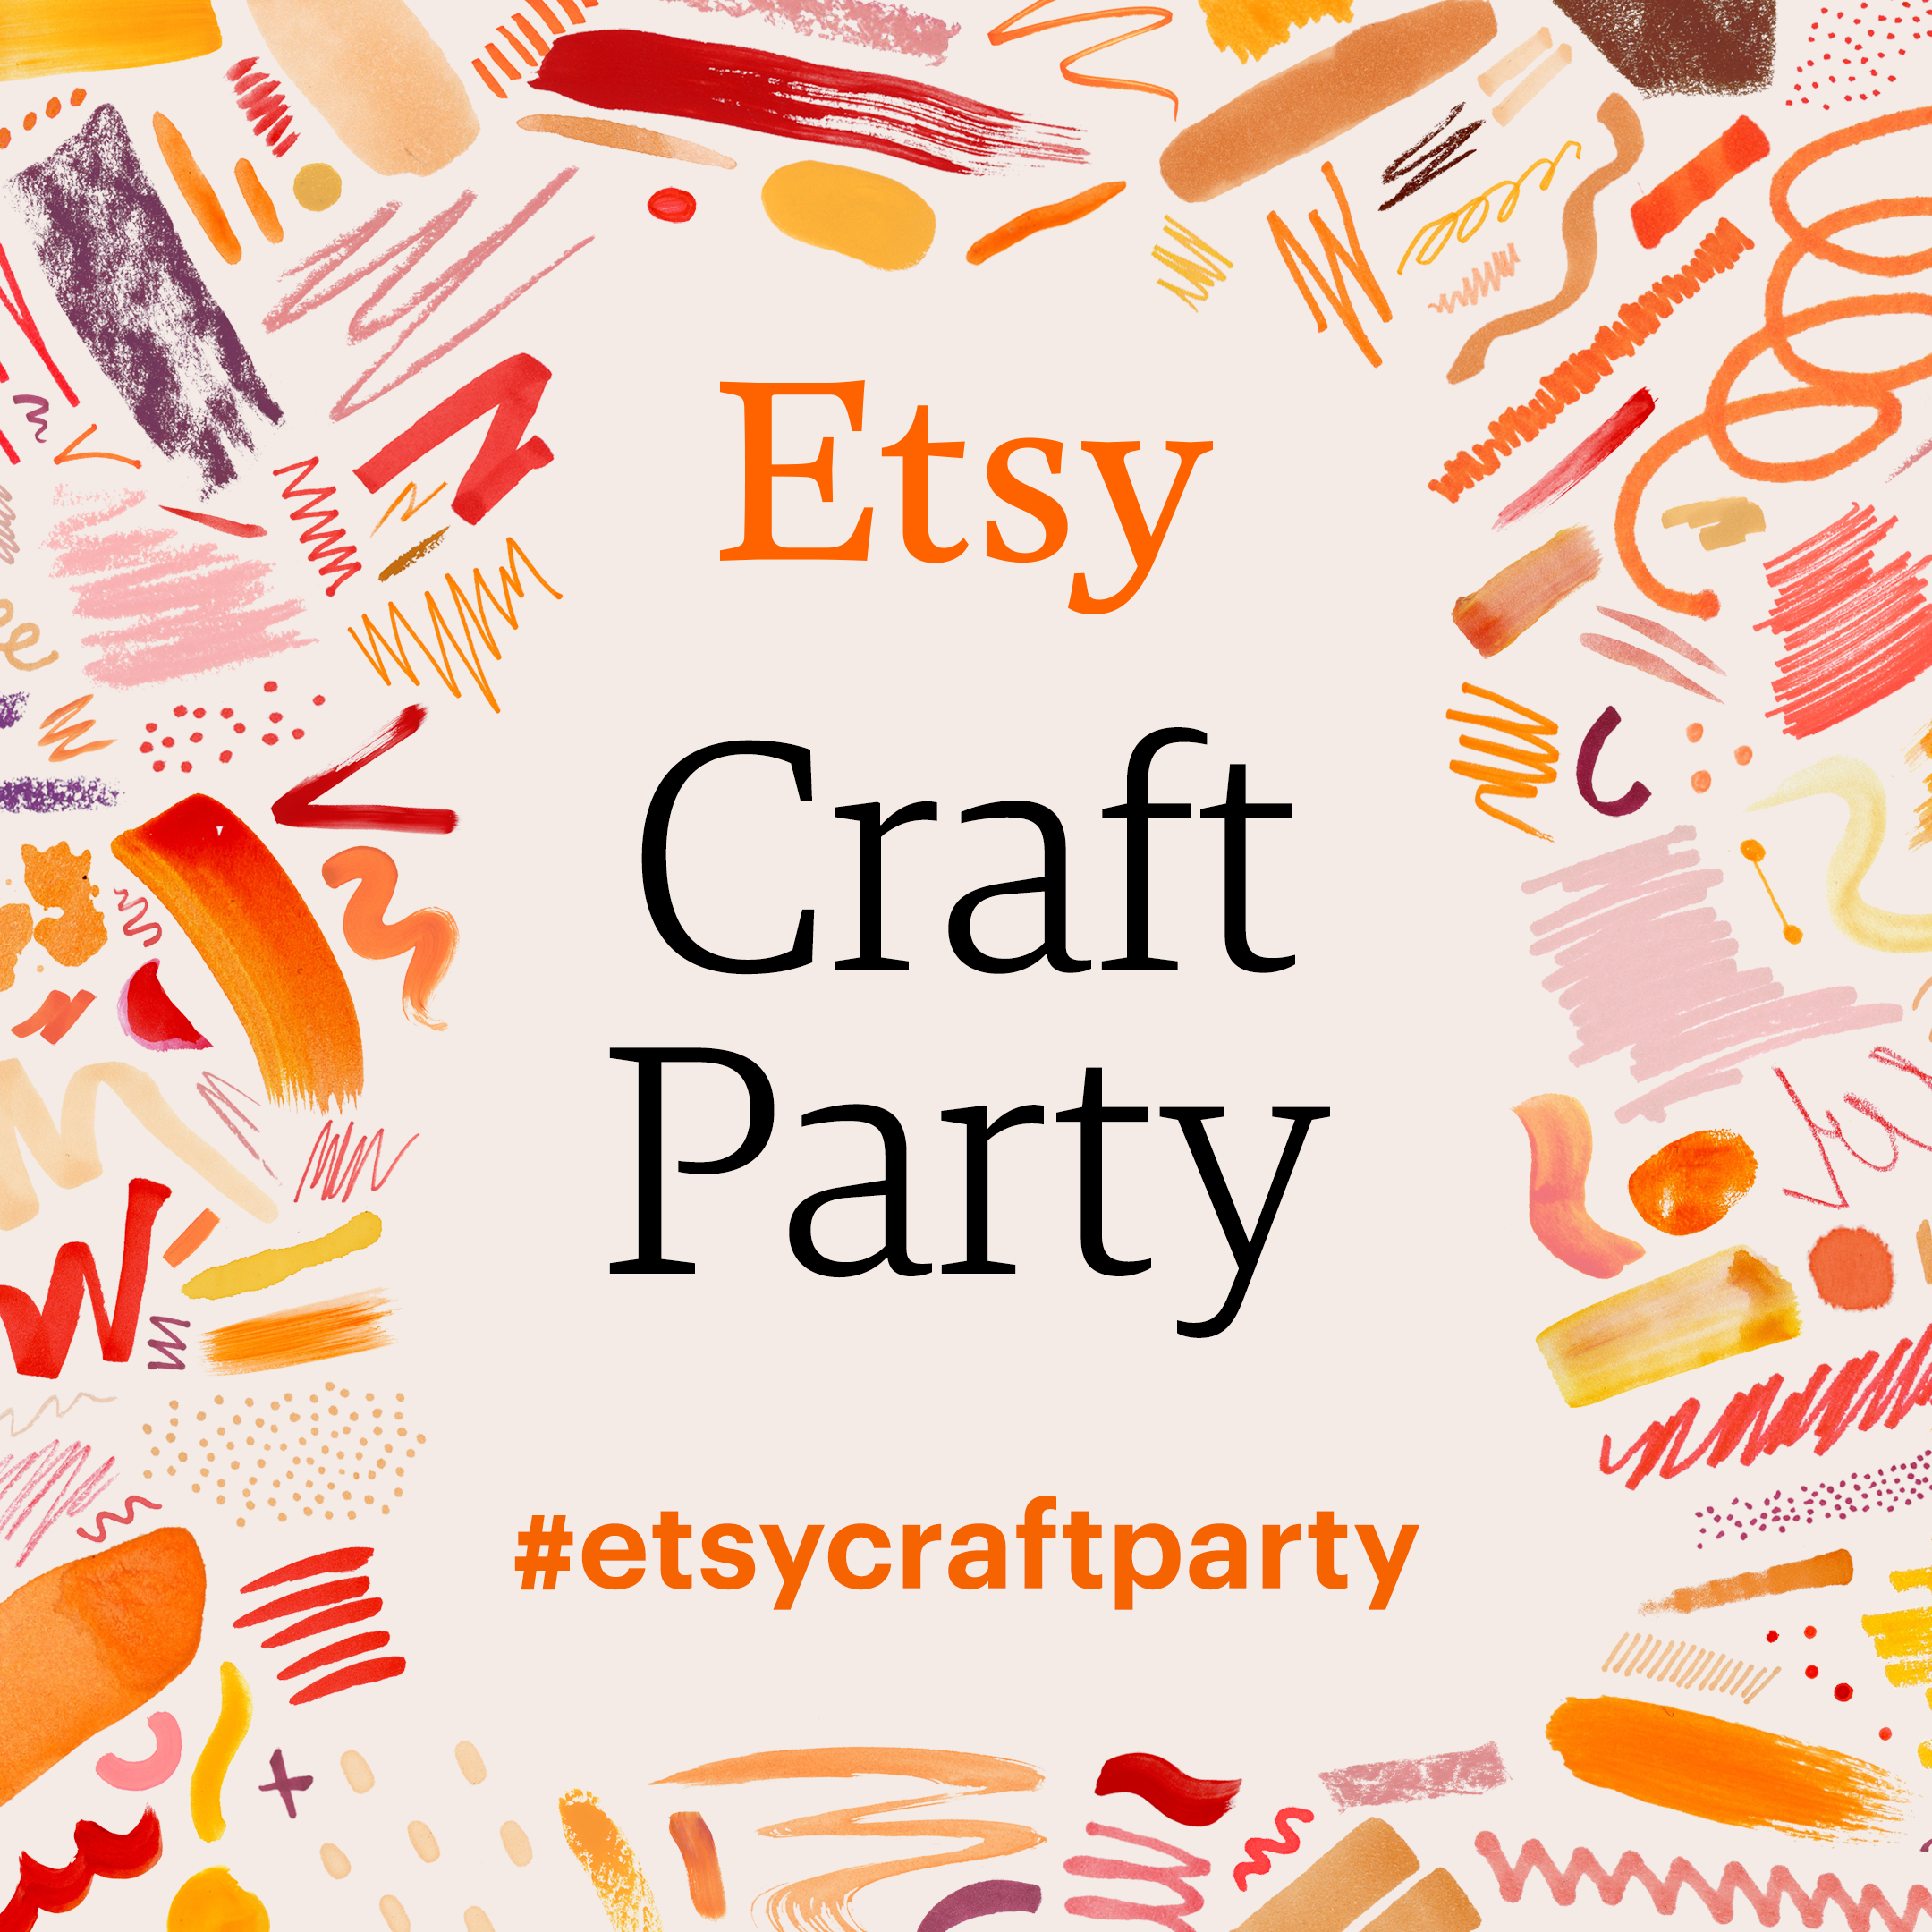 ETSY Craft Party 2016